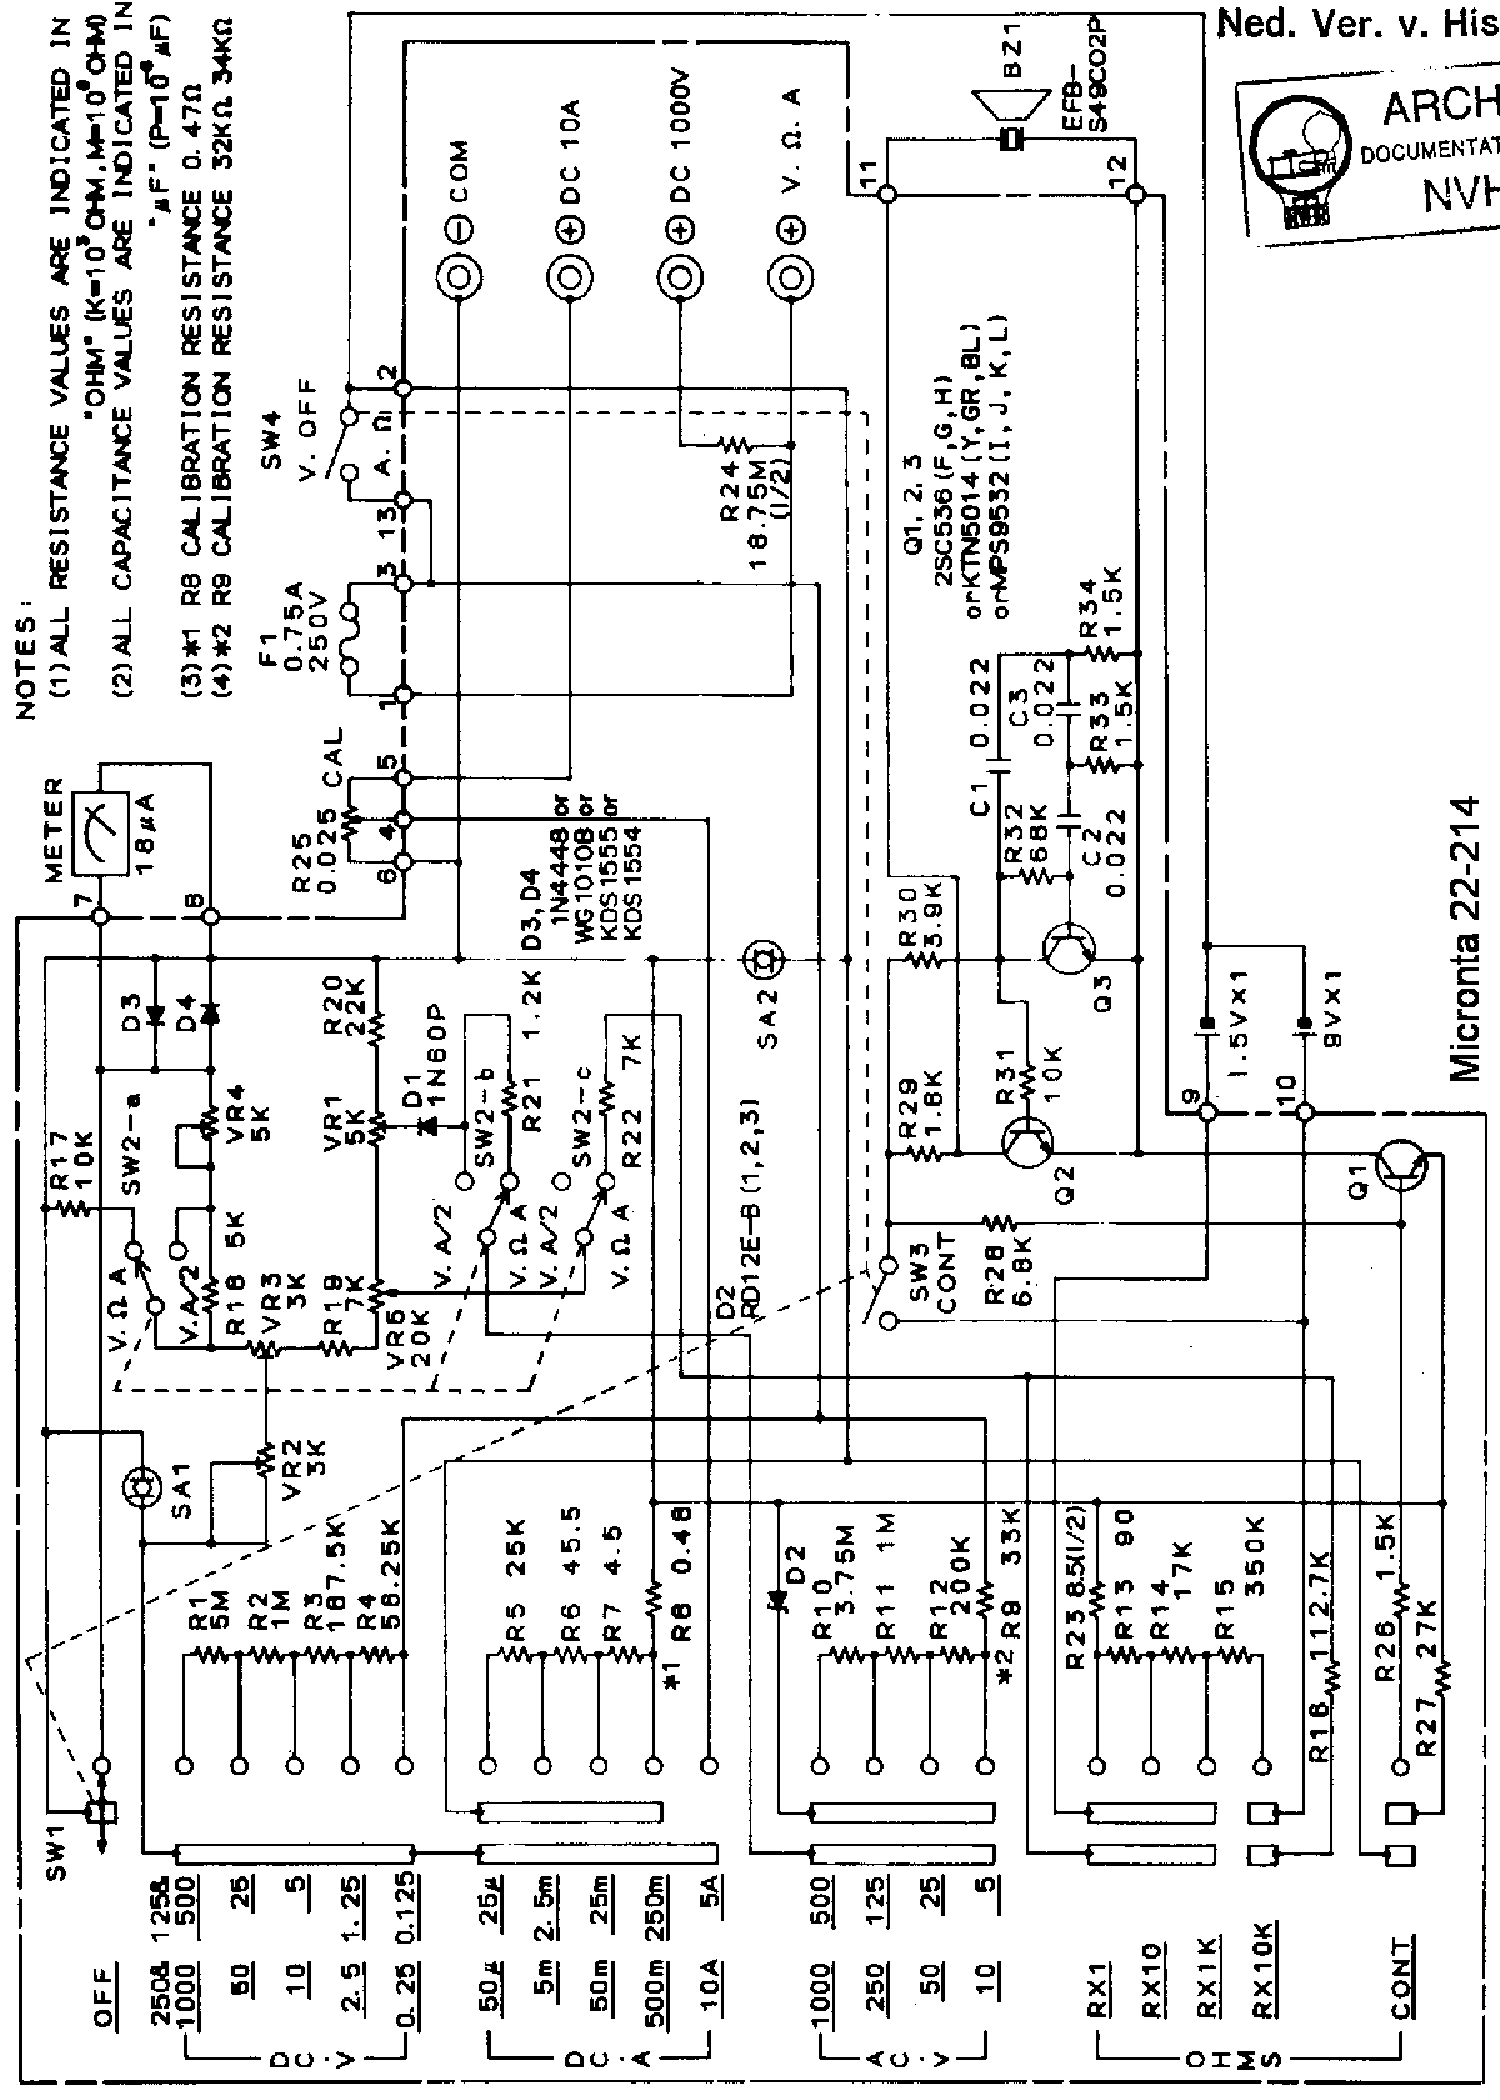 micronta_22 214_analog mm_w.buzzer_sch.pdf_1 micronta 22 214 analog mm w buzzer sch service manual download  at gsmx.co